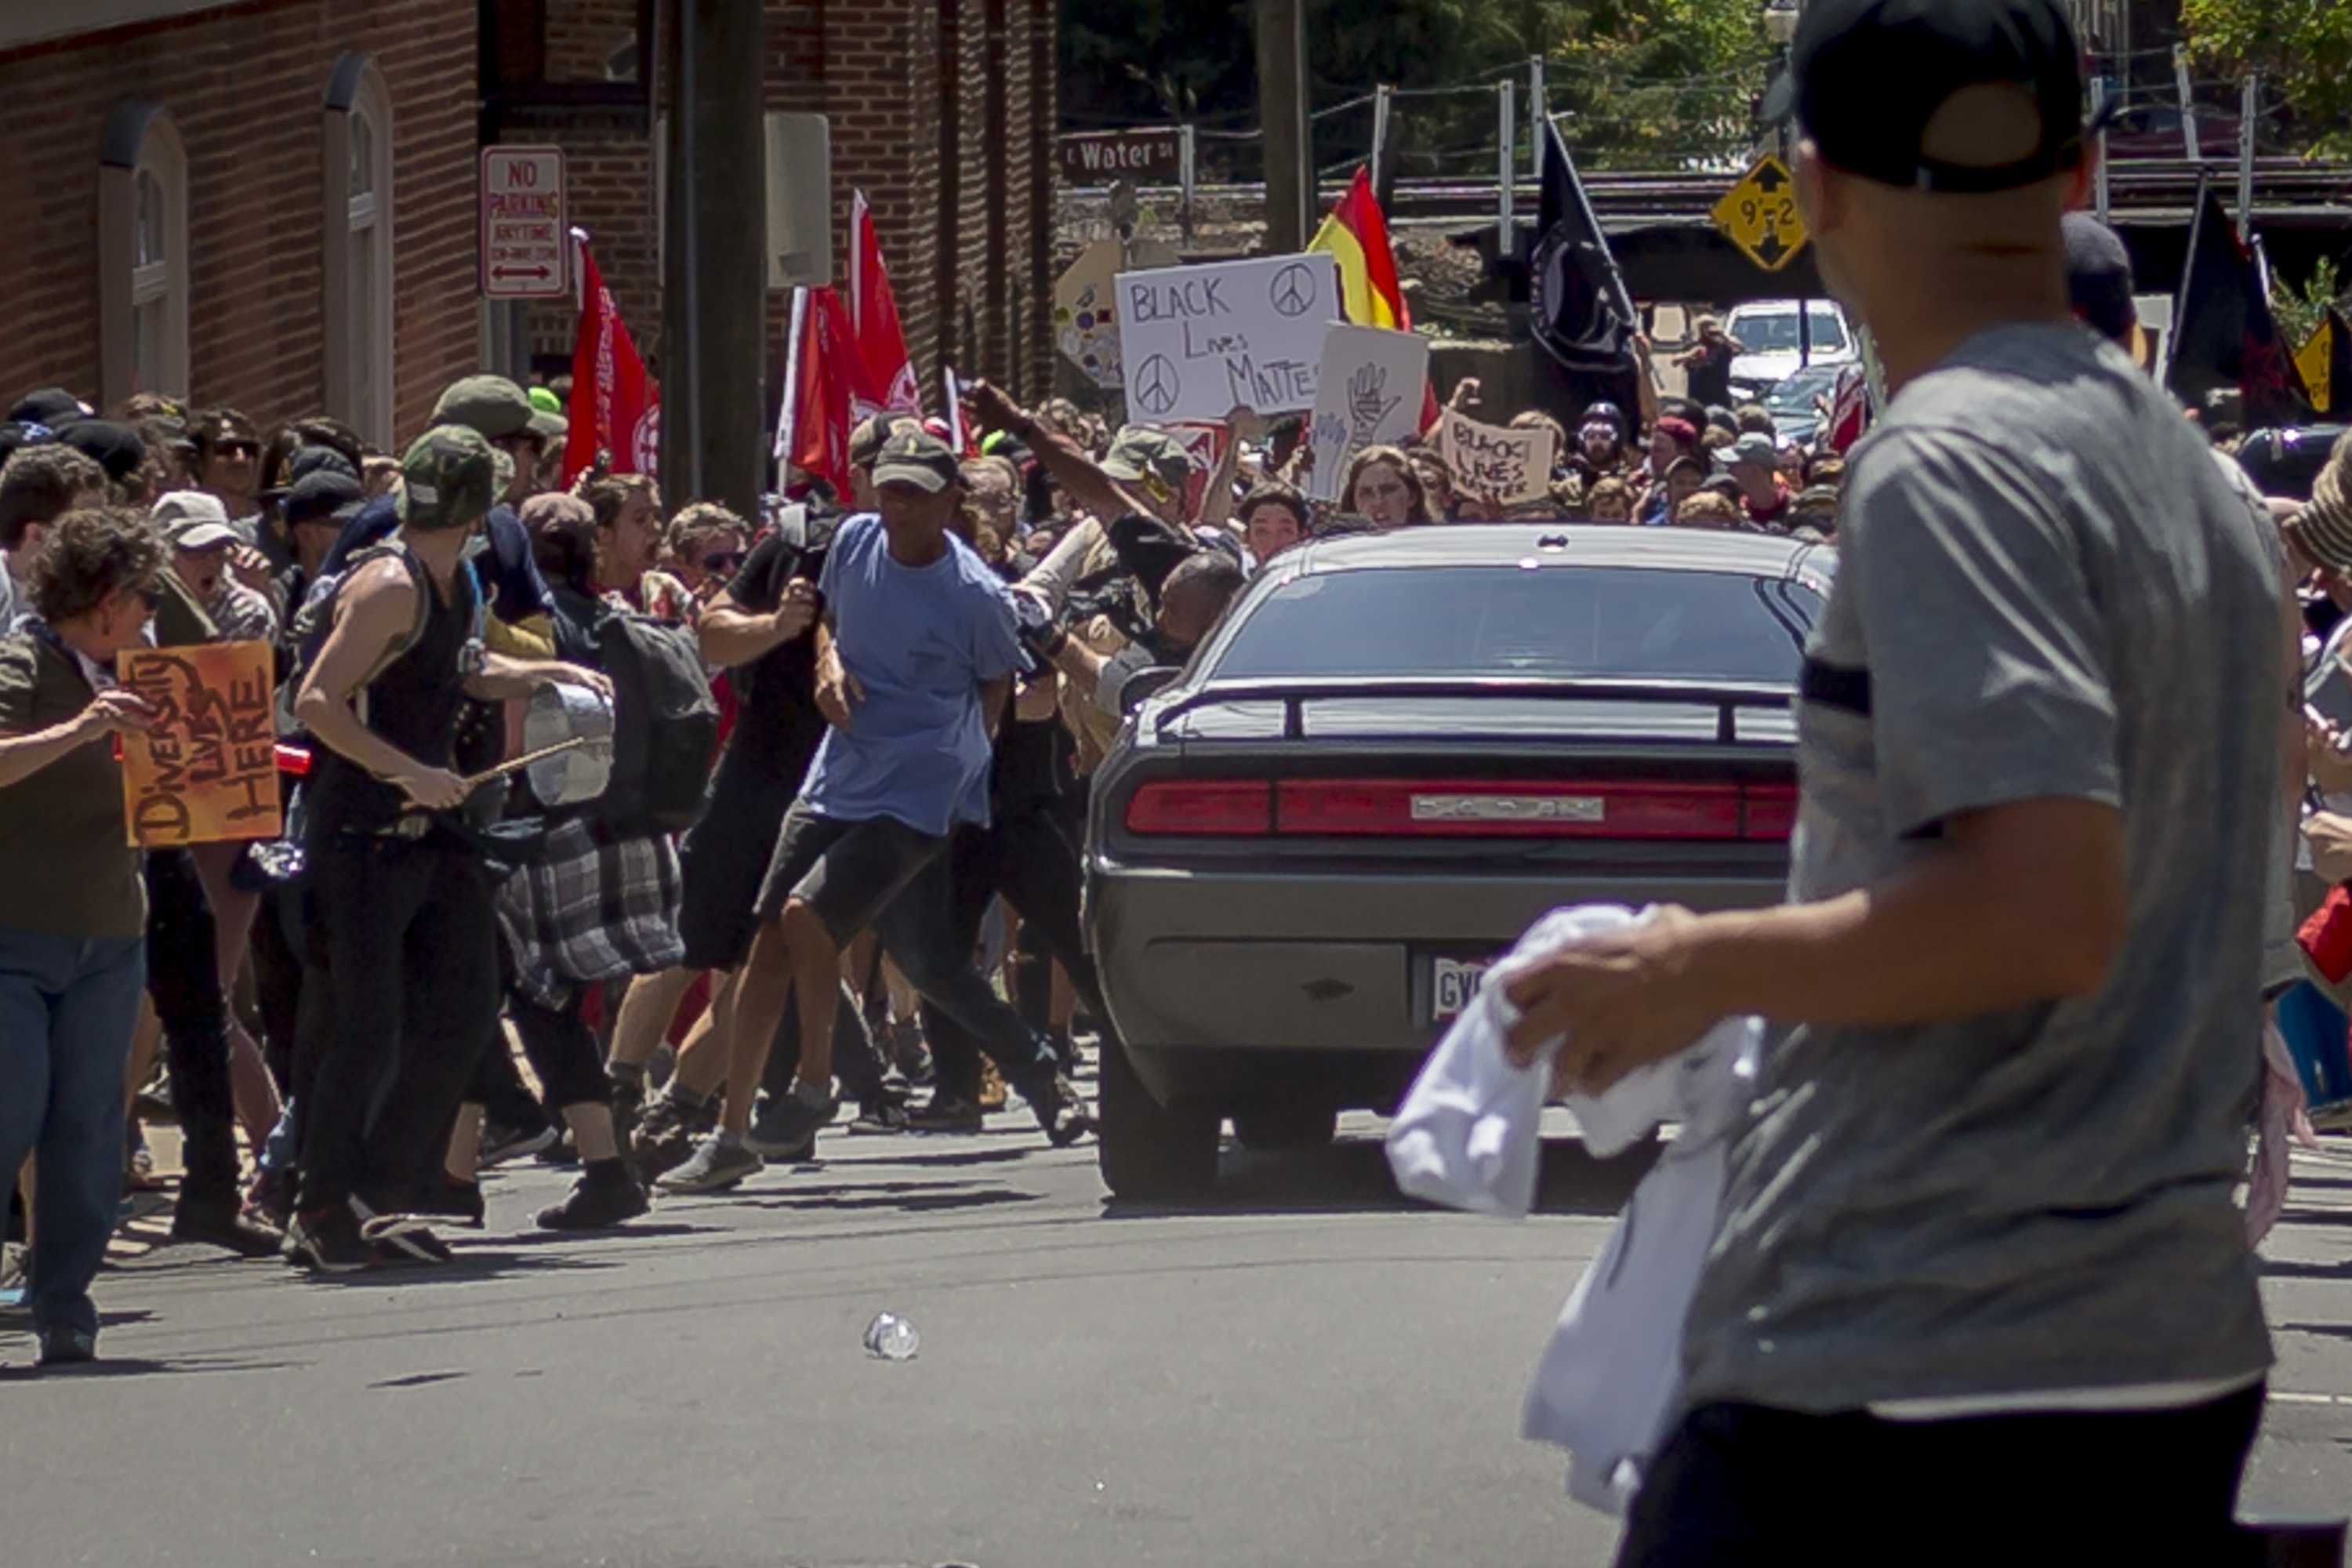 On Saturday, Aug. 12, 2017, white supremacist groups clashed with hundreds of counter-protesters during the ''Unite The Right'' rally in Charlottesville, Va. Dozens were injured in skirmishes and many others after a white nationalist plowed his sports car into a throng of protesters. One counter-protester died after being struck by the vehicle. The driver of the car was caught fleeing the scene and the governor of Virginia issued a state of emergency. (Michael Nigro/Pacific Press/Zuma Press/TNS)